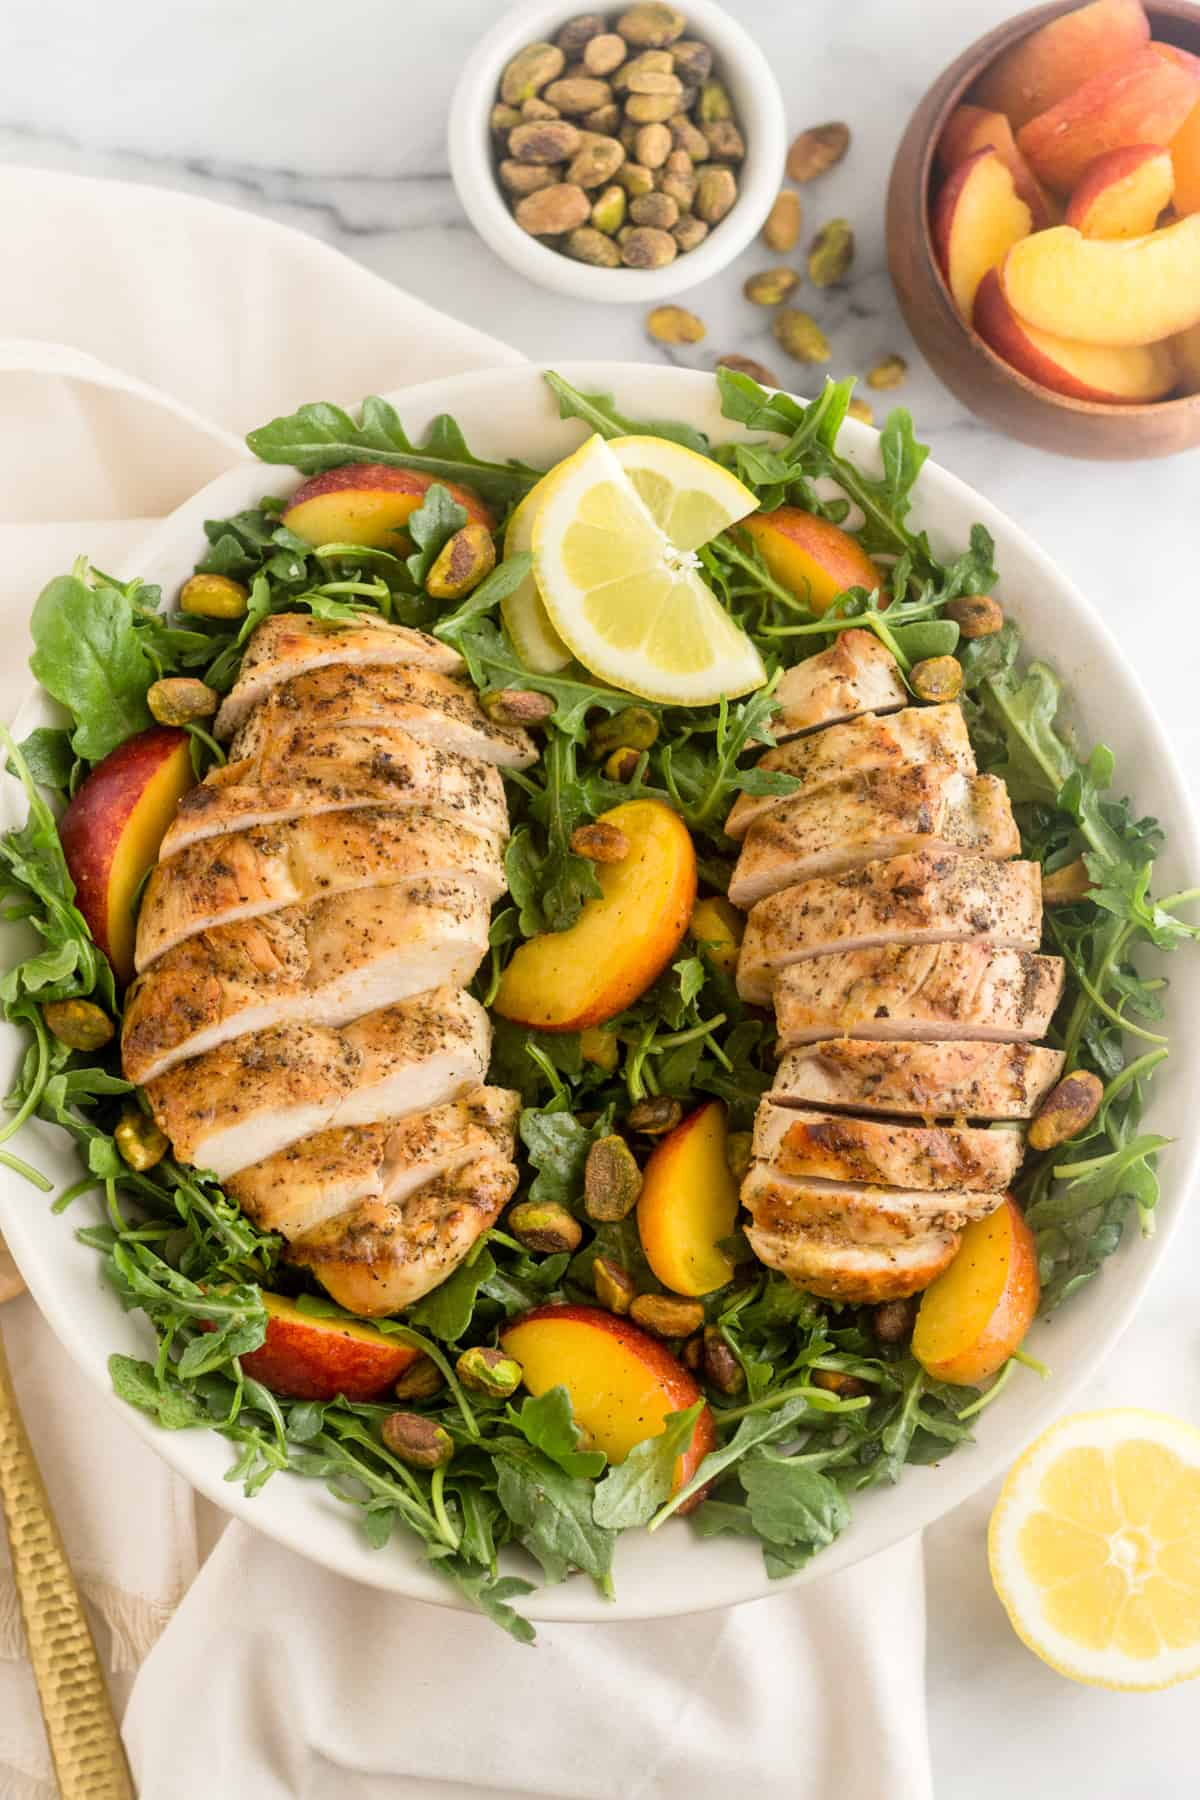 Peach and Pistachio Salad with Grilled Chicken in a large bowl overtop a white linen with pistachios, peaches, and half a lemon around it